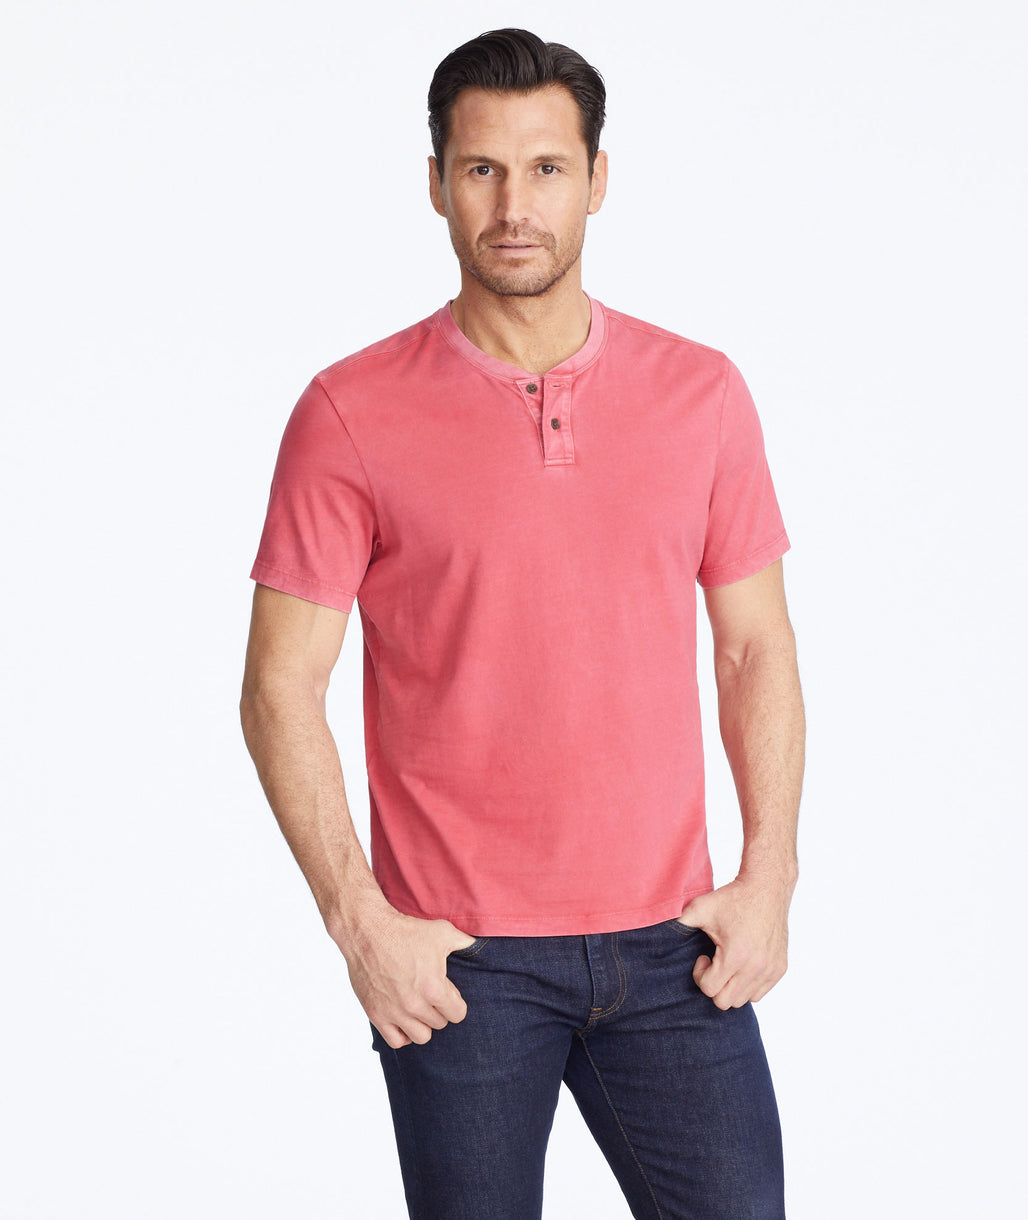 Model wearing a Red Short-Sleeve Baxter Henley